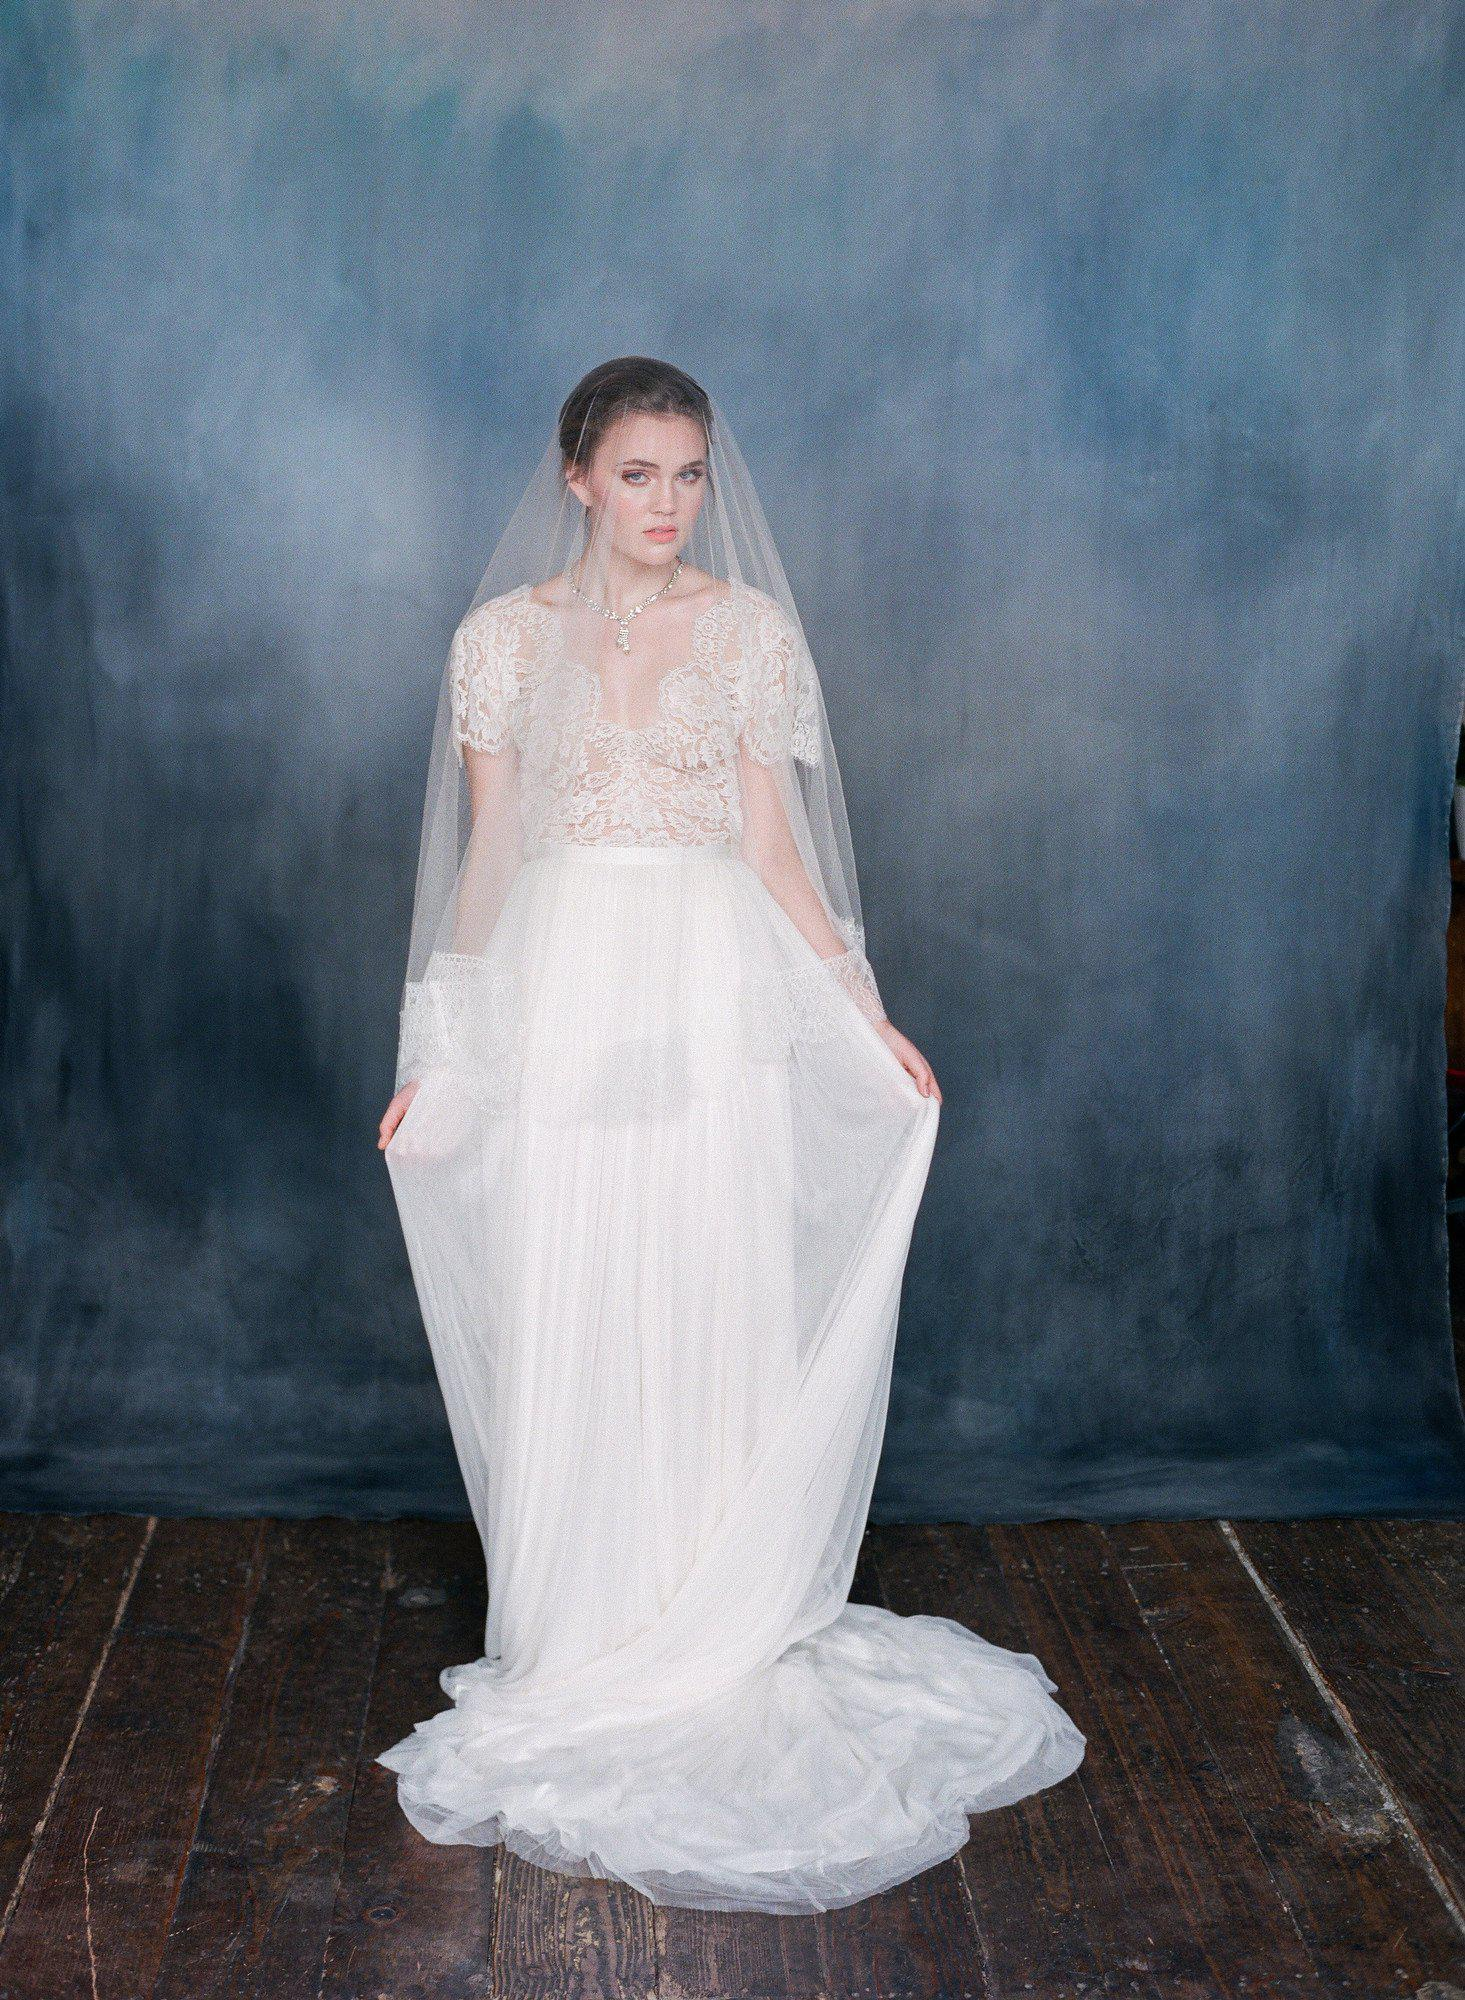 Women wearing am ivory silk tulle dress with sheer silk veil